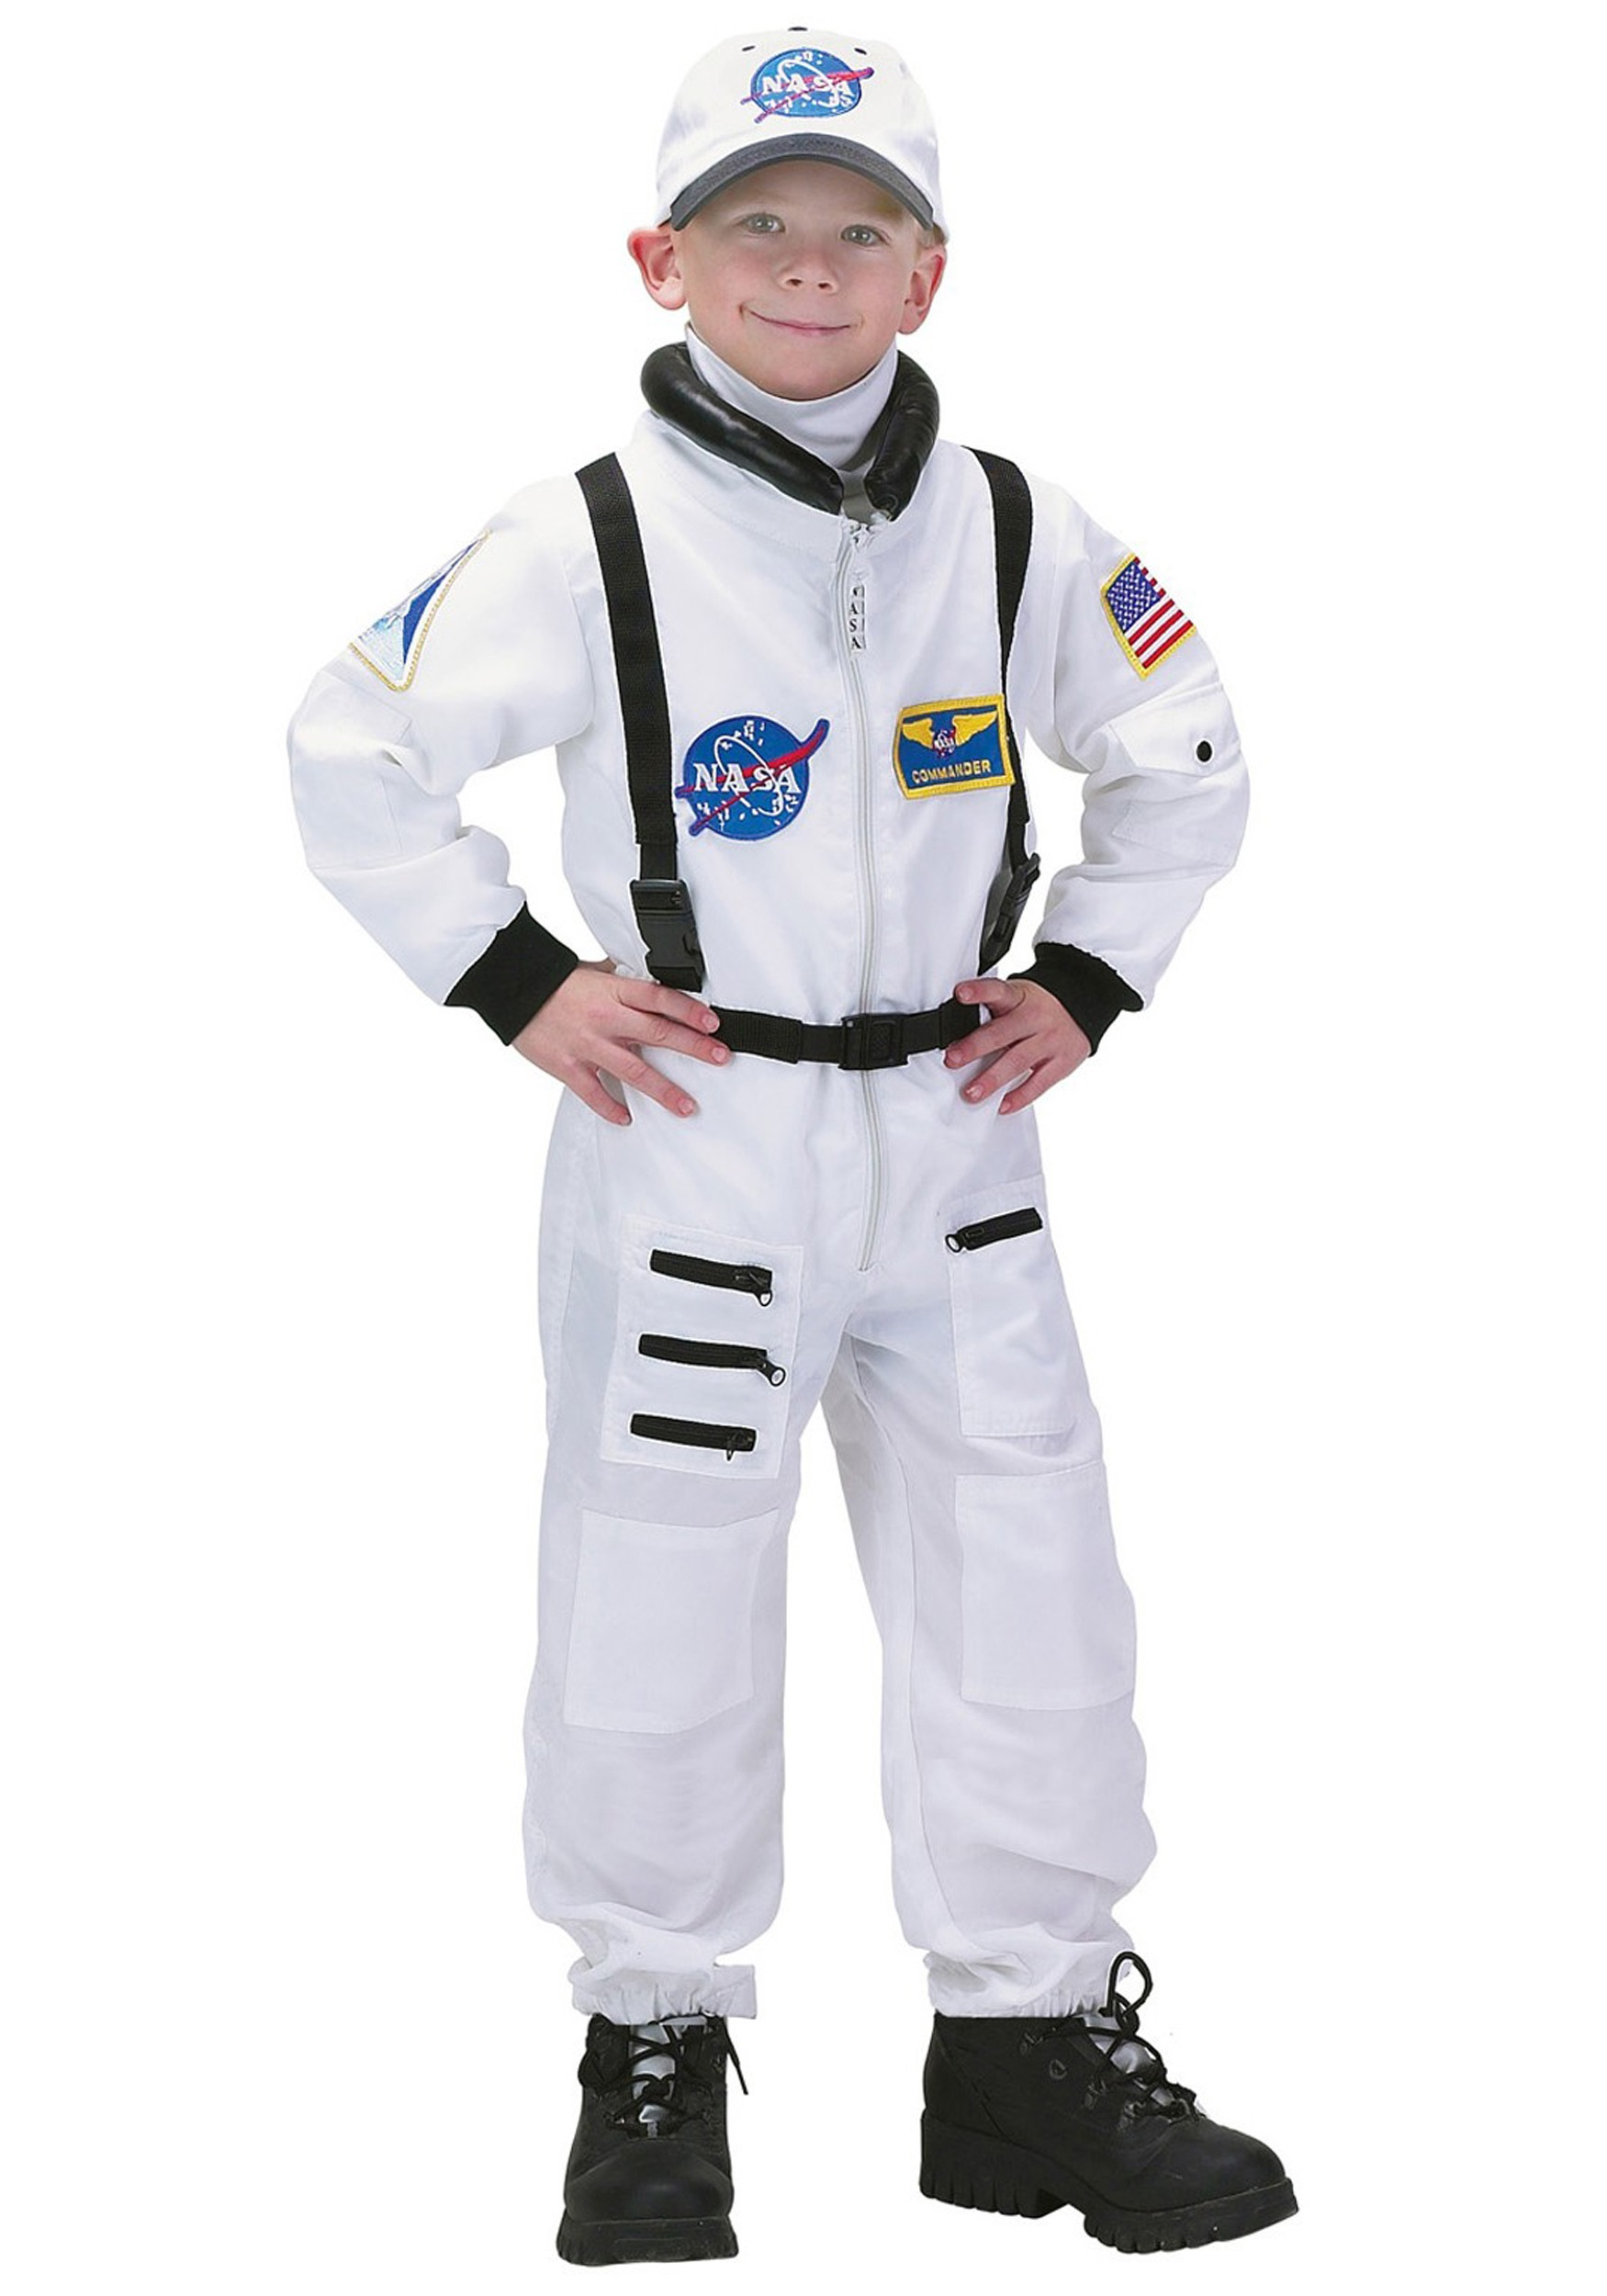 Astronaut Suit Costume for Kids